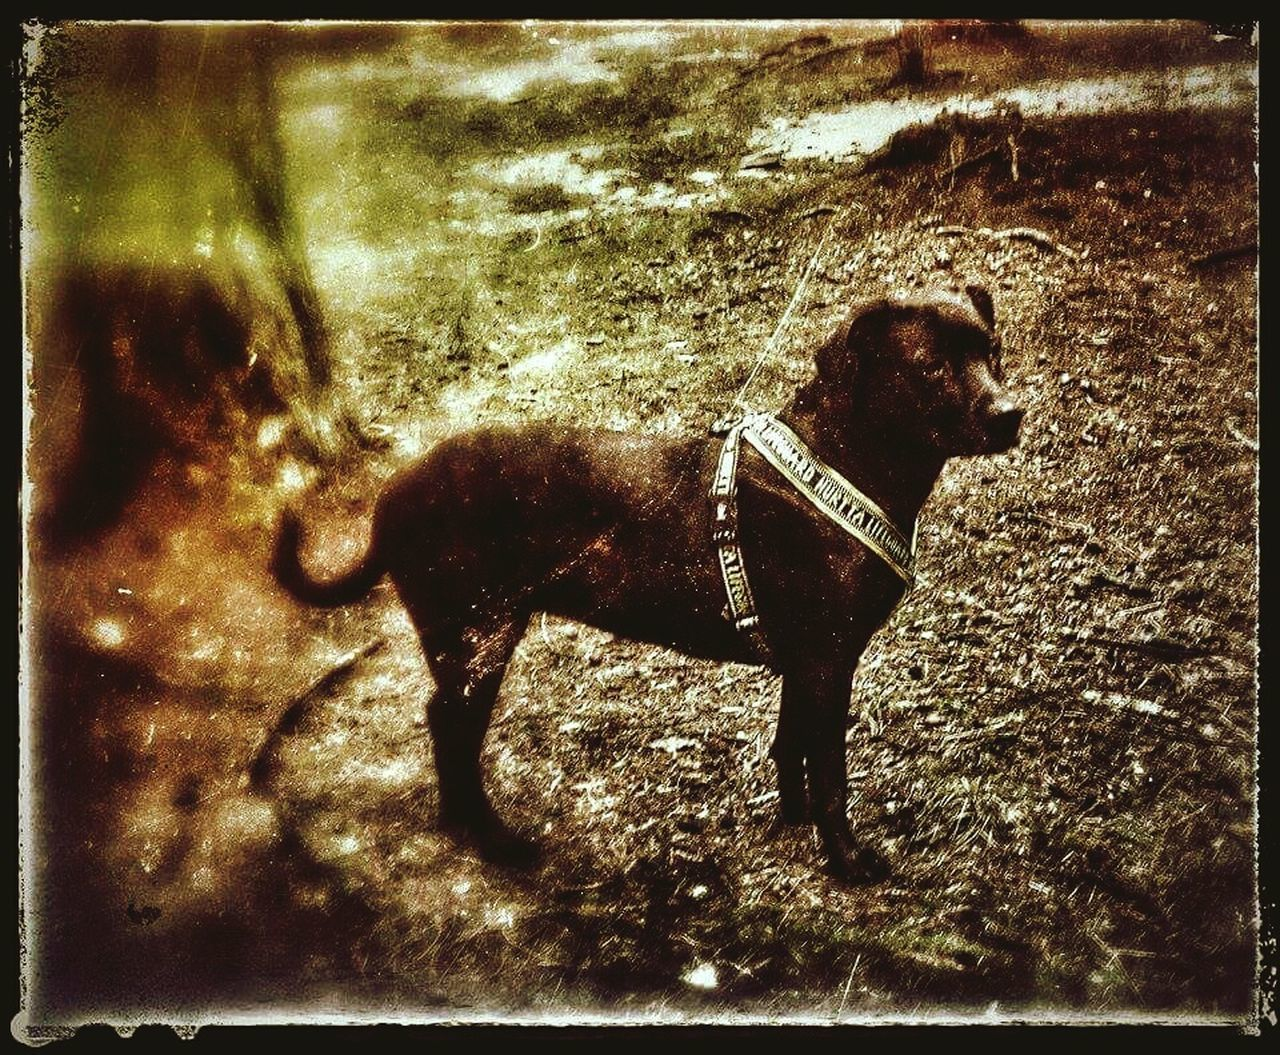 dog, animal themes, one animal, domestic animals, pets, mammal, full length, pet collar, no people, standing, outdoors, day, grass, nature